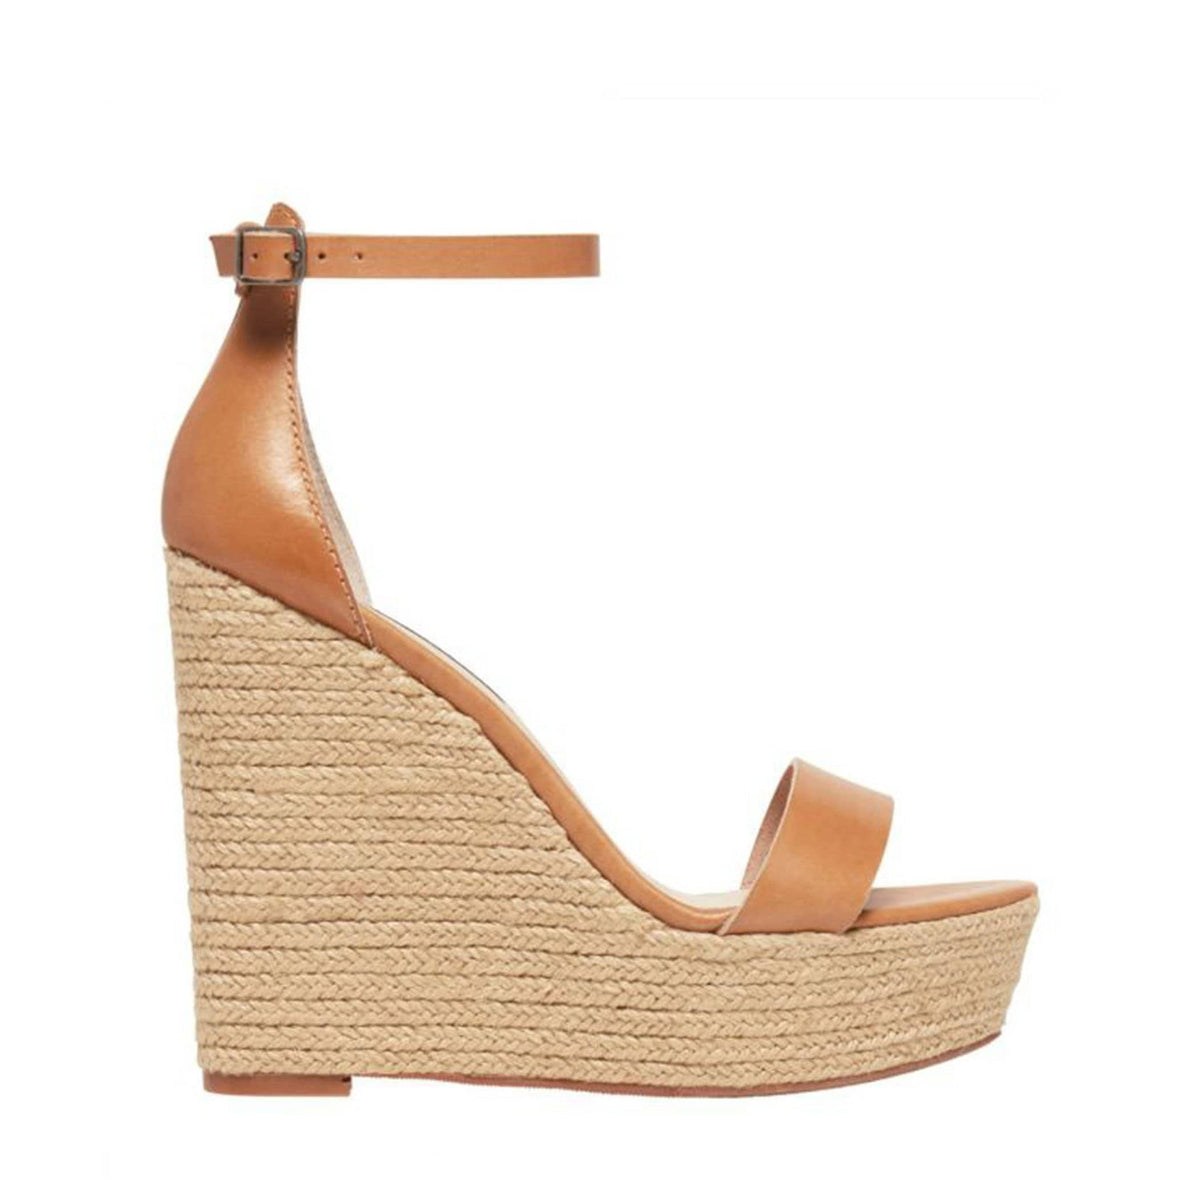 Kaila Wedge Natural Leather Jean Jail